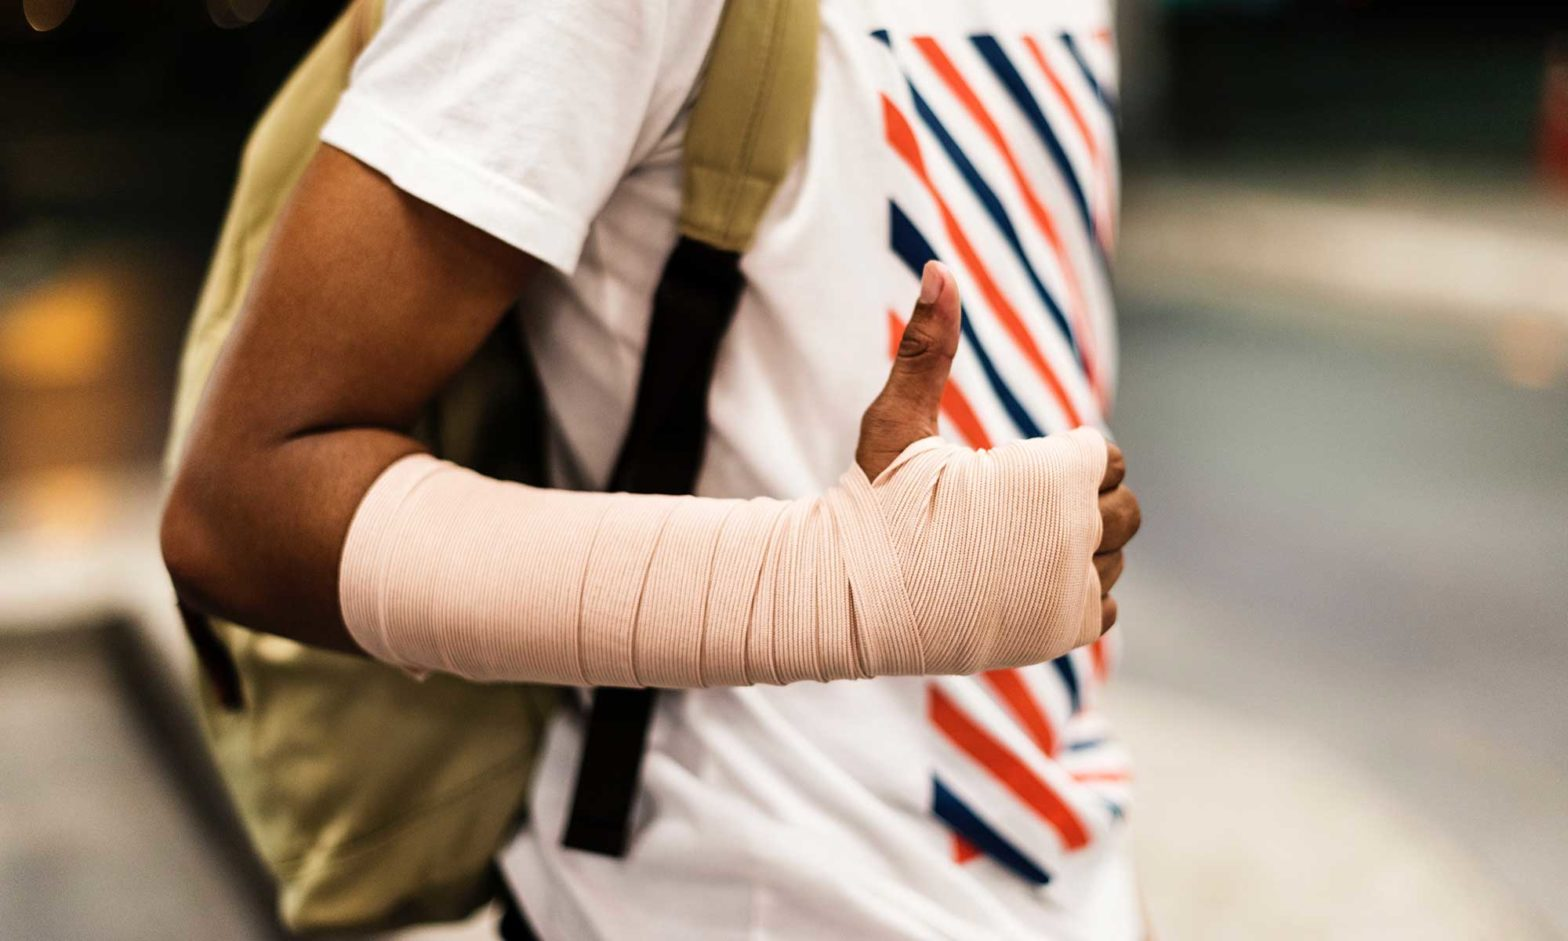 Recover Quickly From Workplace Injury